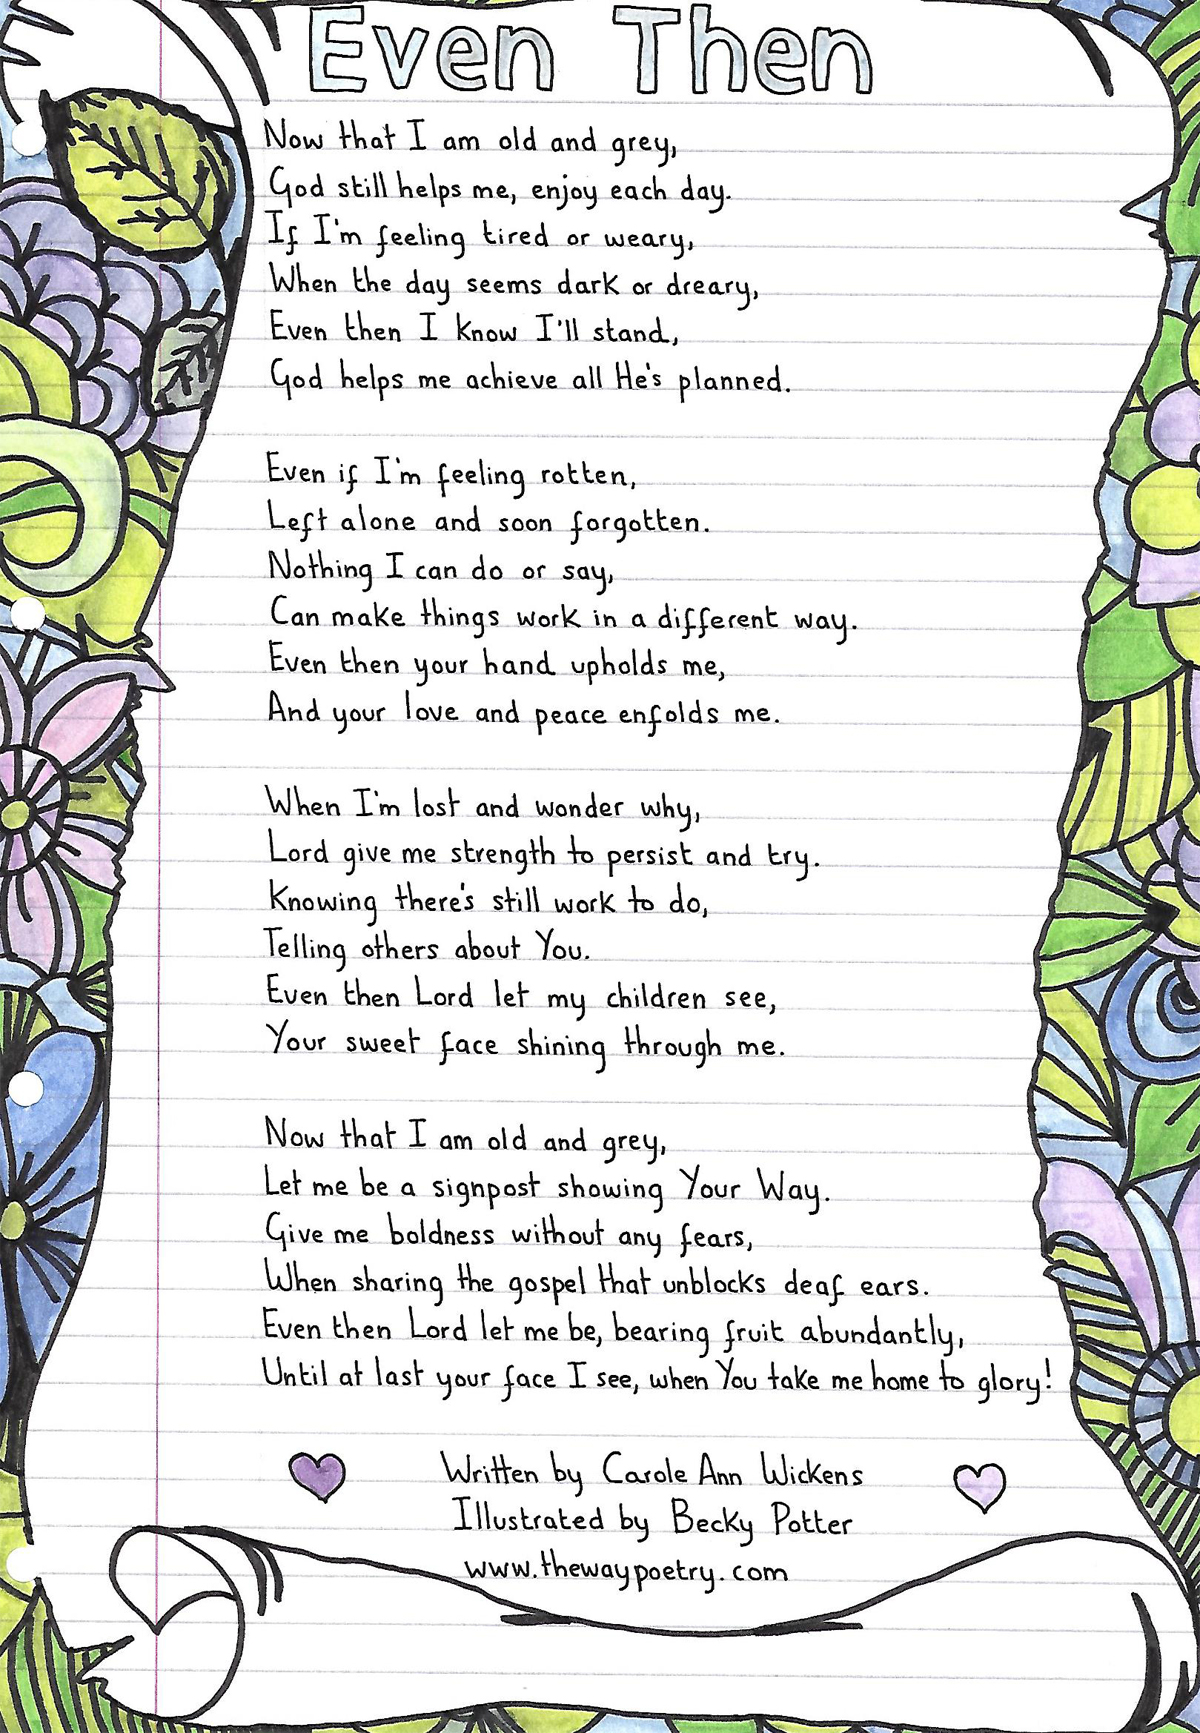 Even Then by Carole Ann Wickens